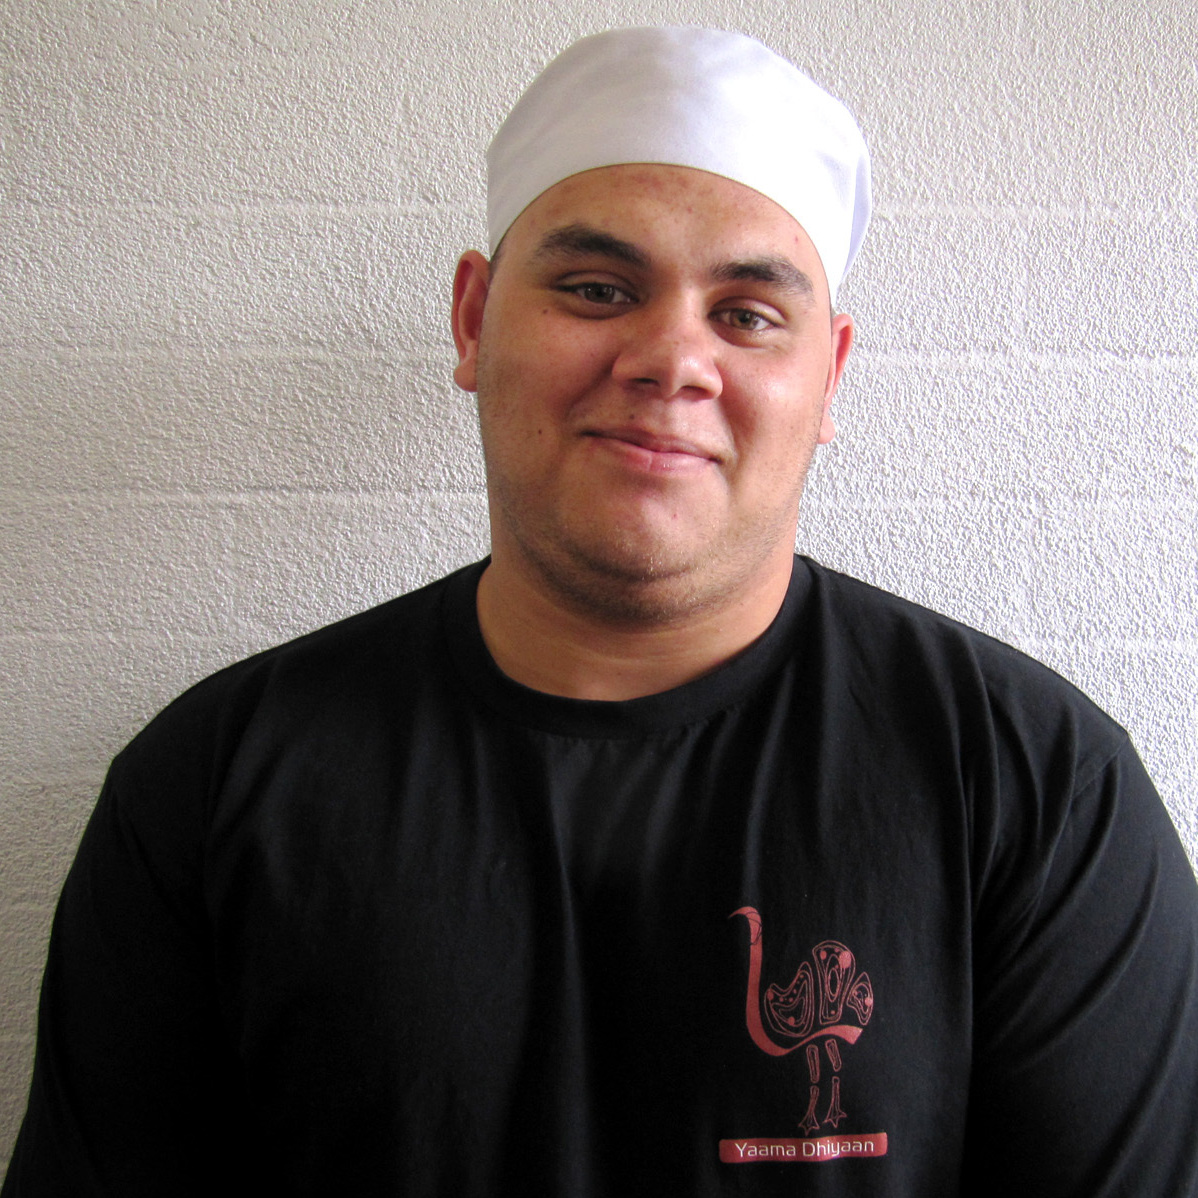 When James Wilden was a student in Yaama Dhiyaan's hospitality program, he was incarcerated in jail. He has since found work cooking in restaurants in Australia's Northern Territory.